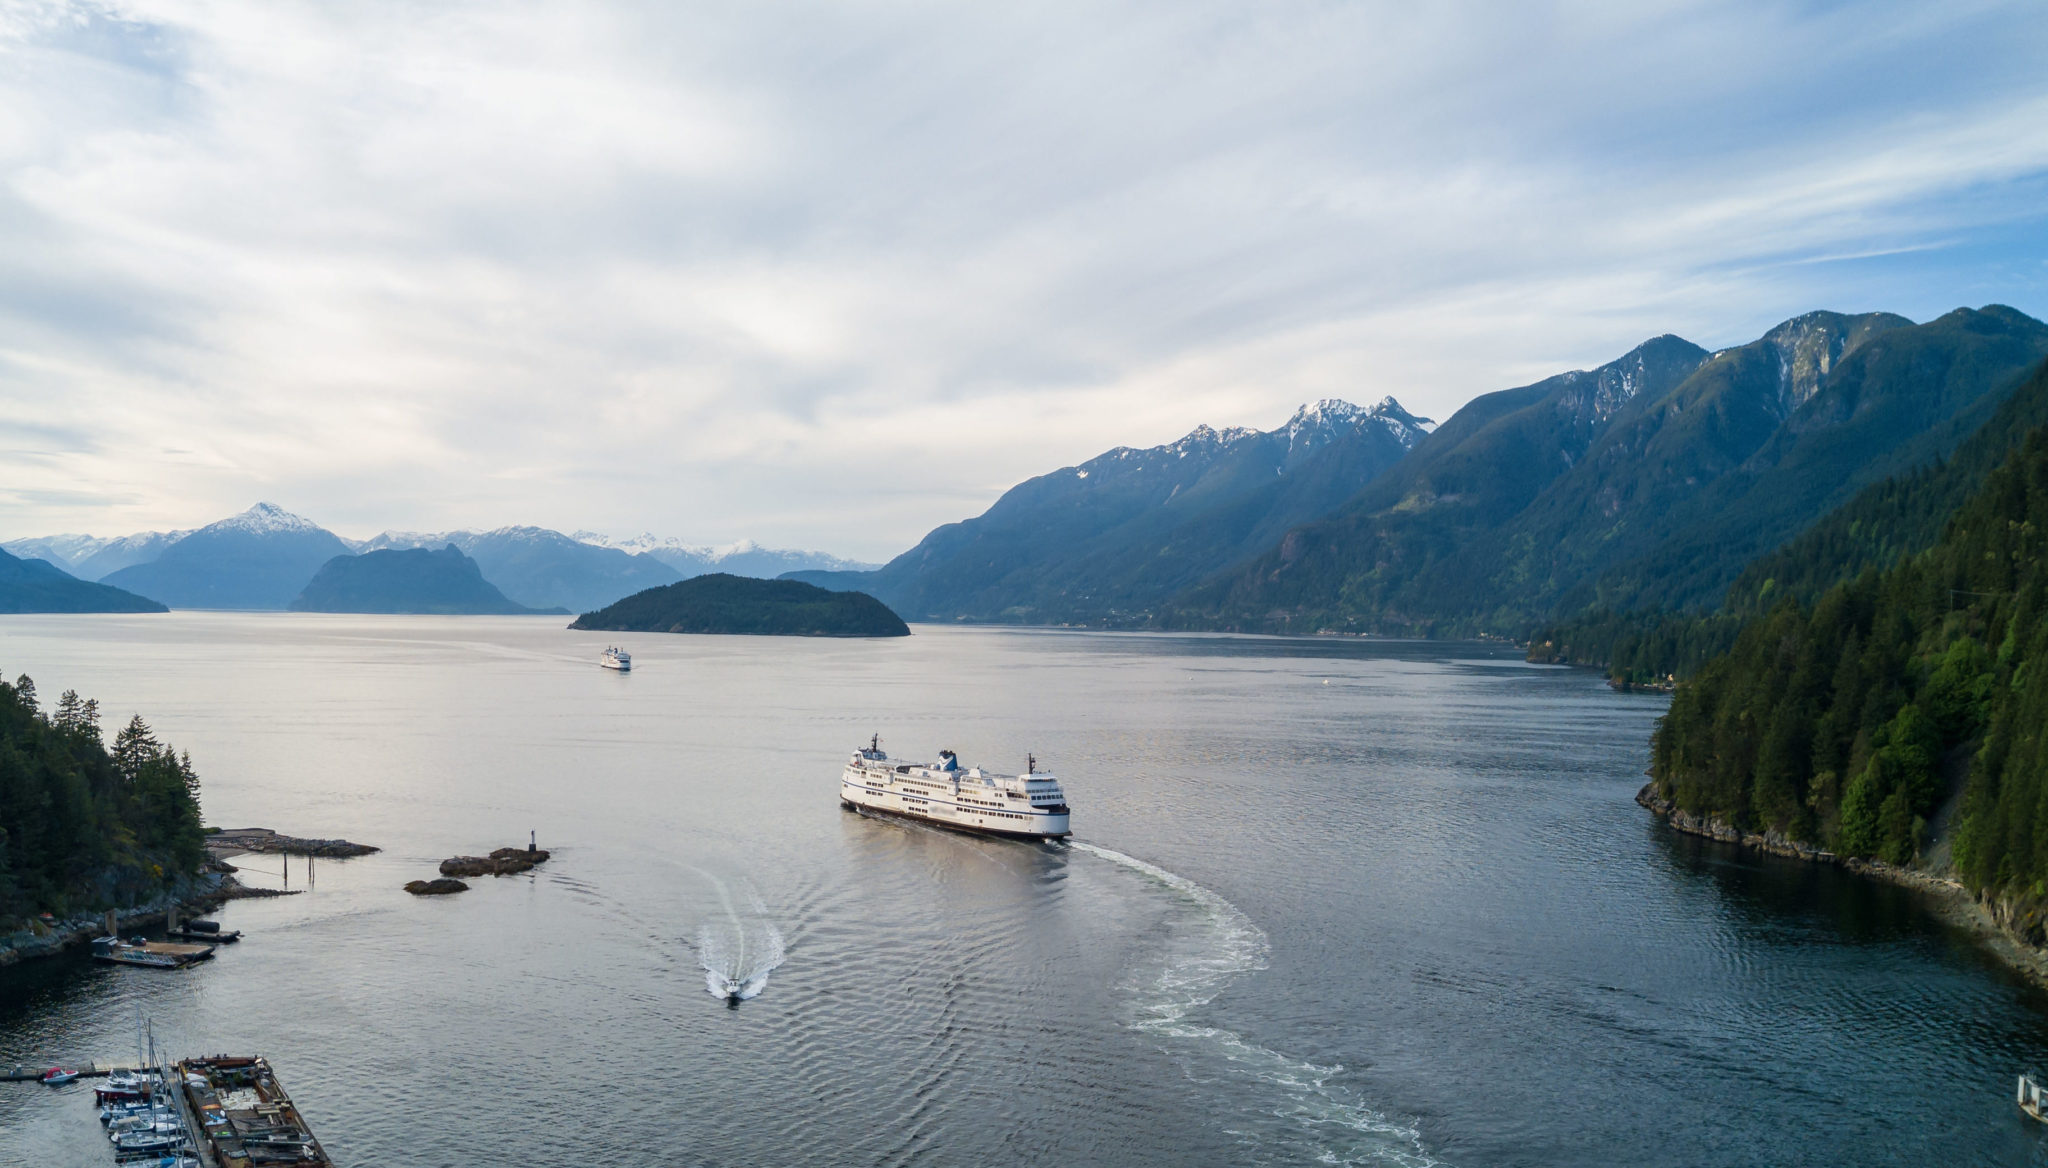 the commute and Aerial Panoramic view of Horseshoe Bay with Ferry leaving the terminal. Taken in Howe Sound, West Vancouver, British Columbia, Canada.